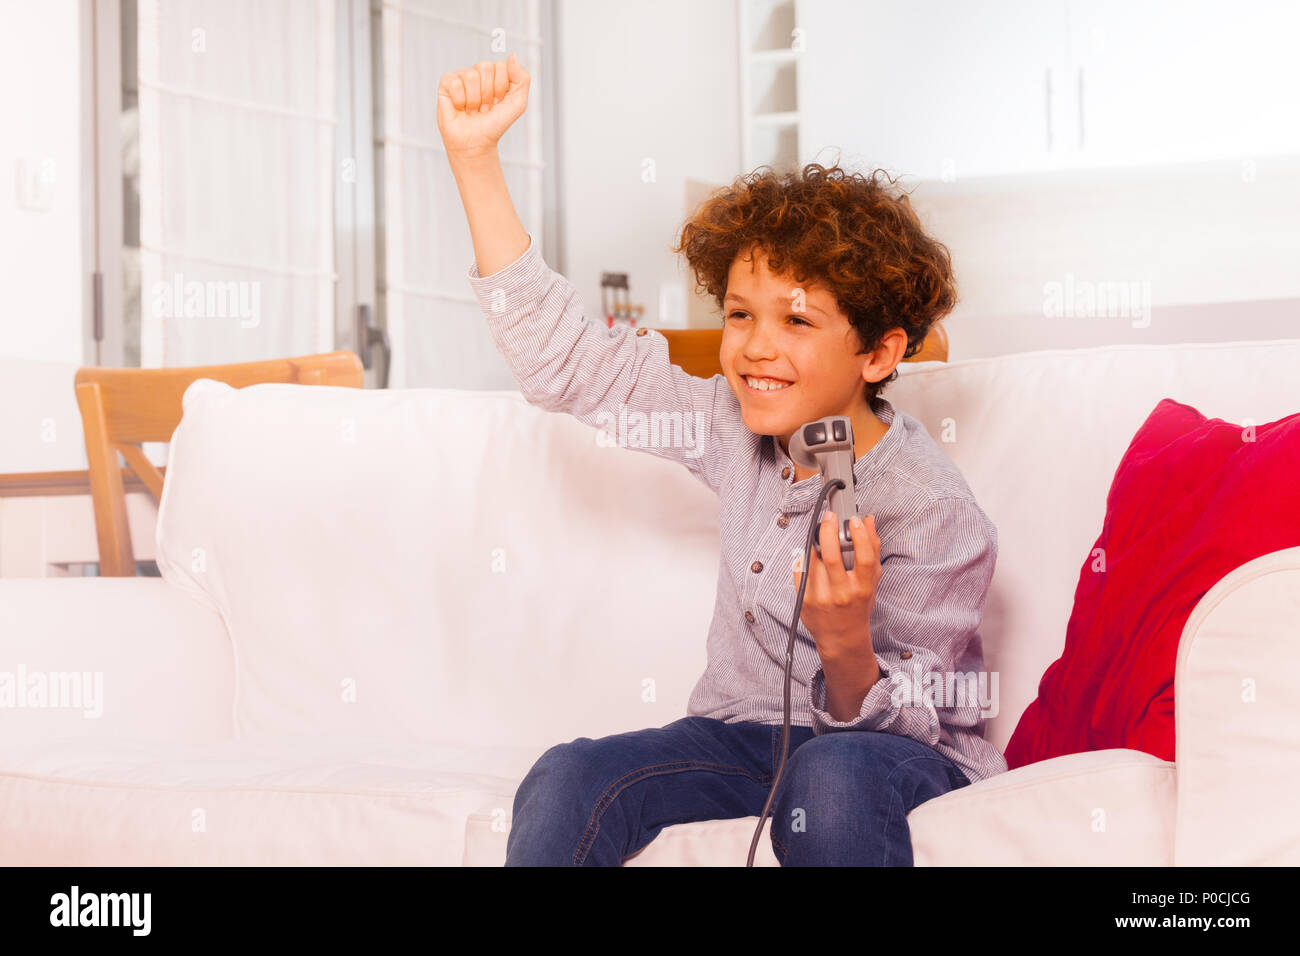 Portrait of happy preteen boy celebrating victory, playing video games at home - Stock Image